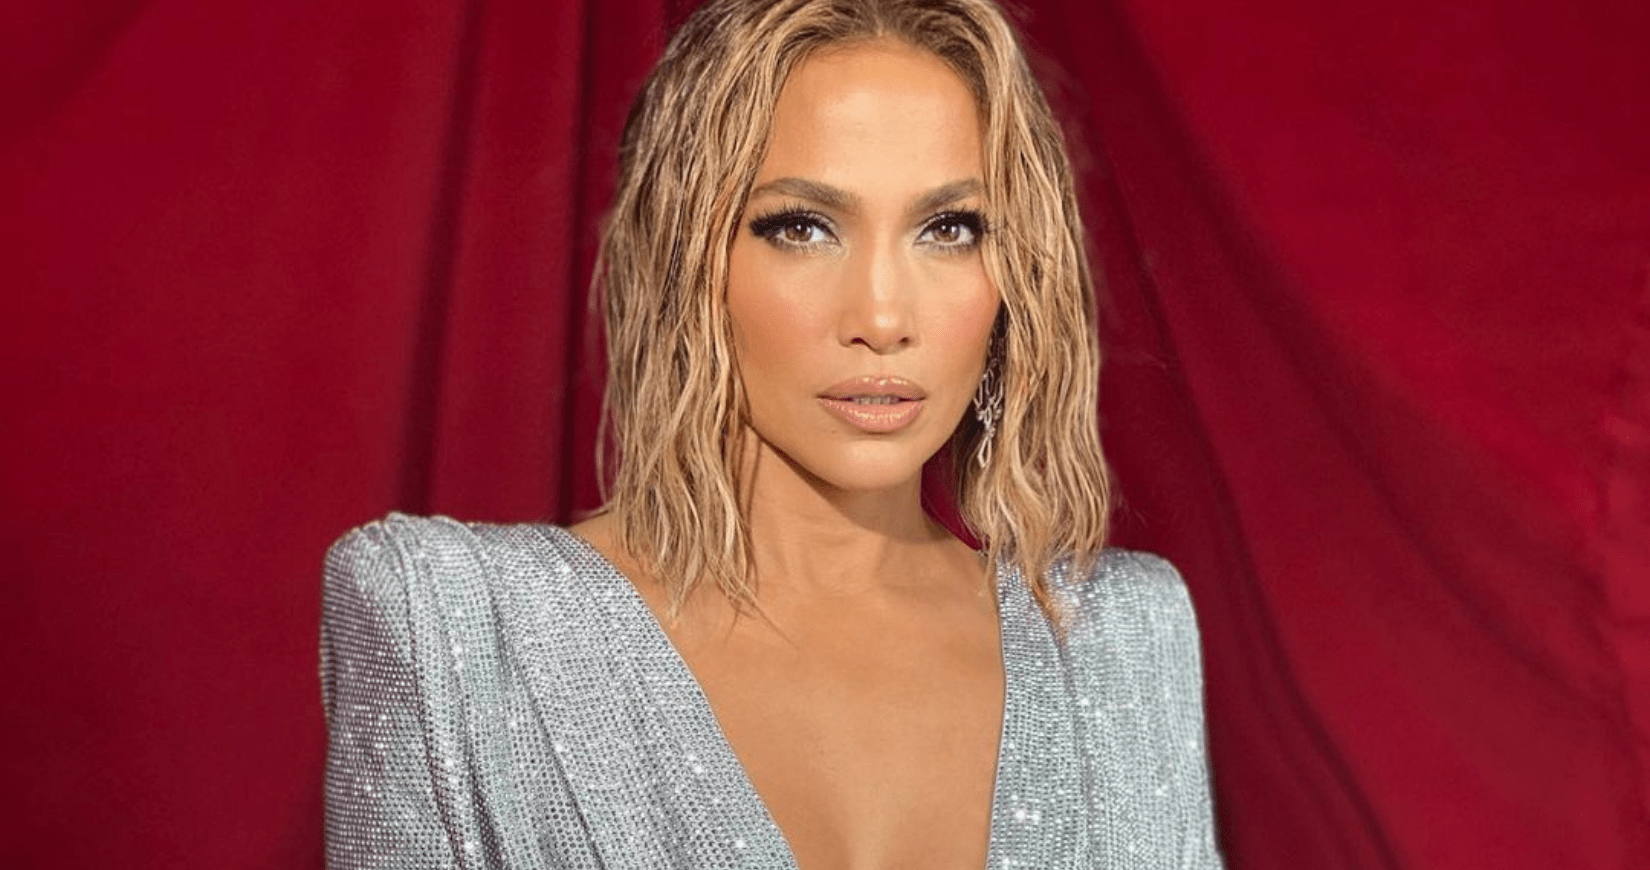 Jennifer Lopez Shuts Down Botox Allegations: 'LOL. That's Just My Face'